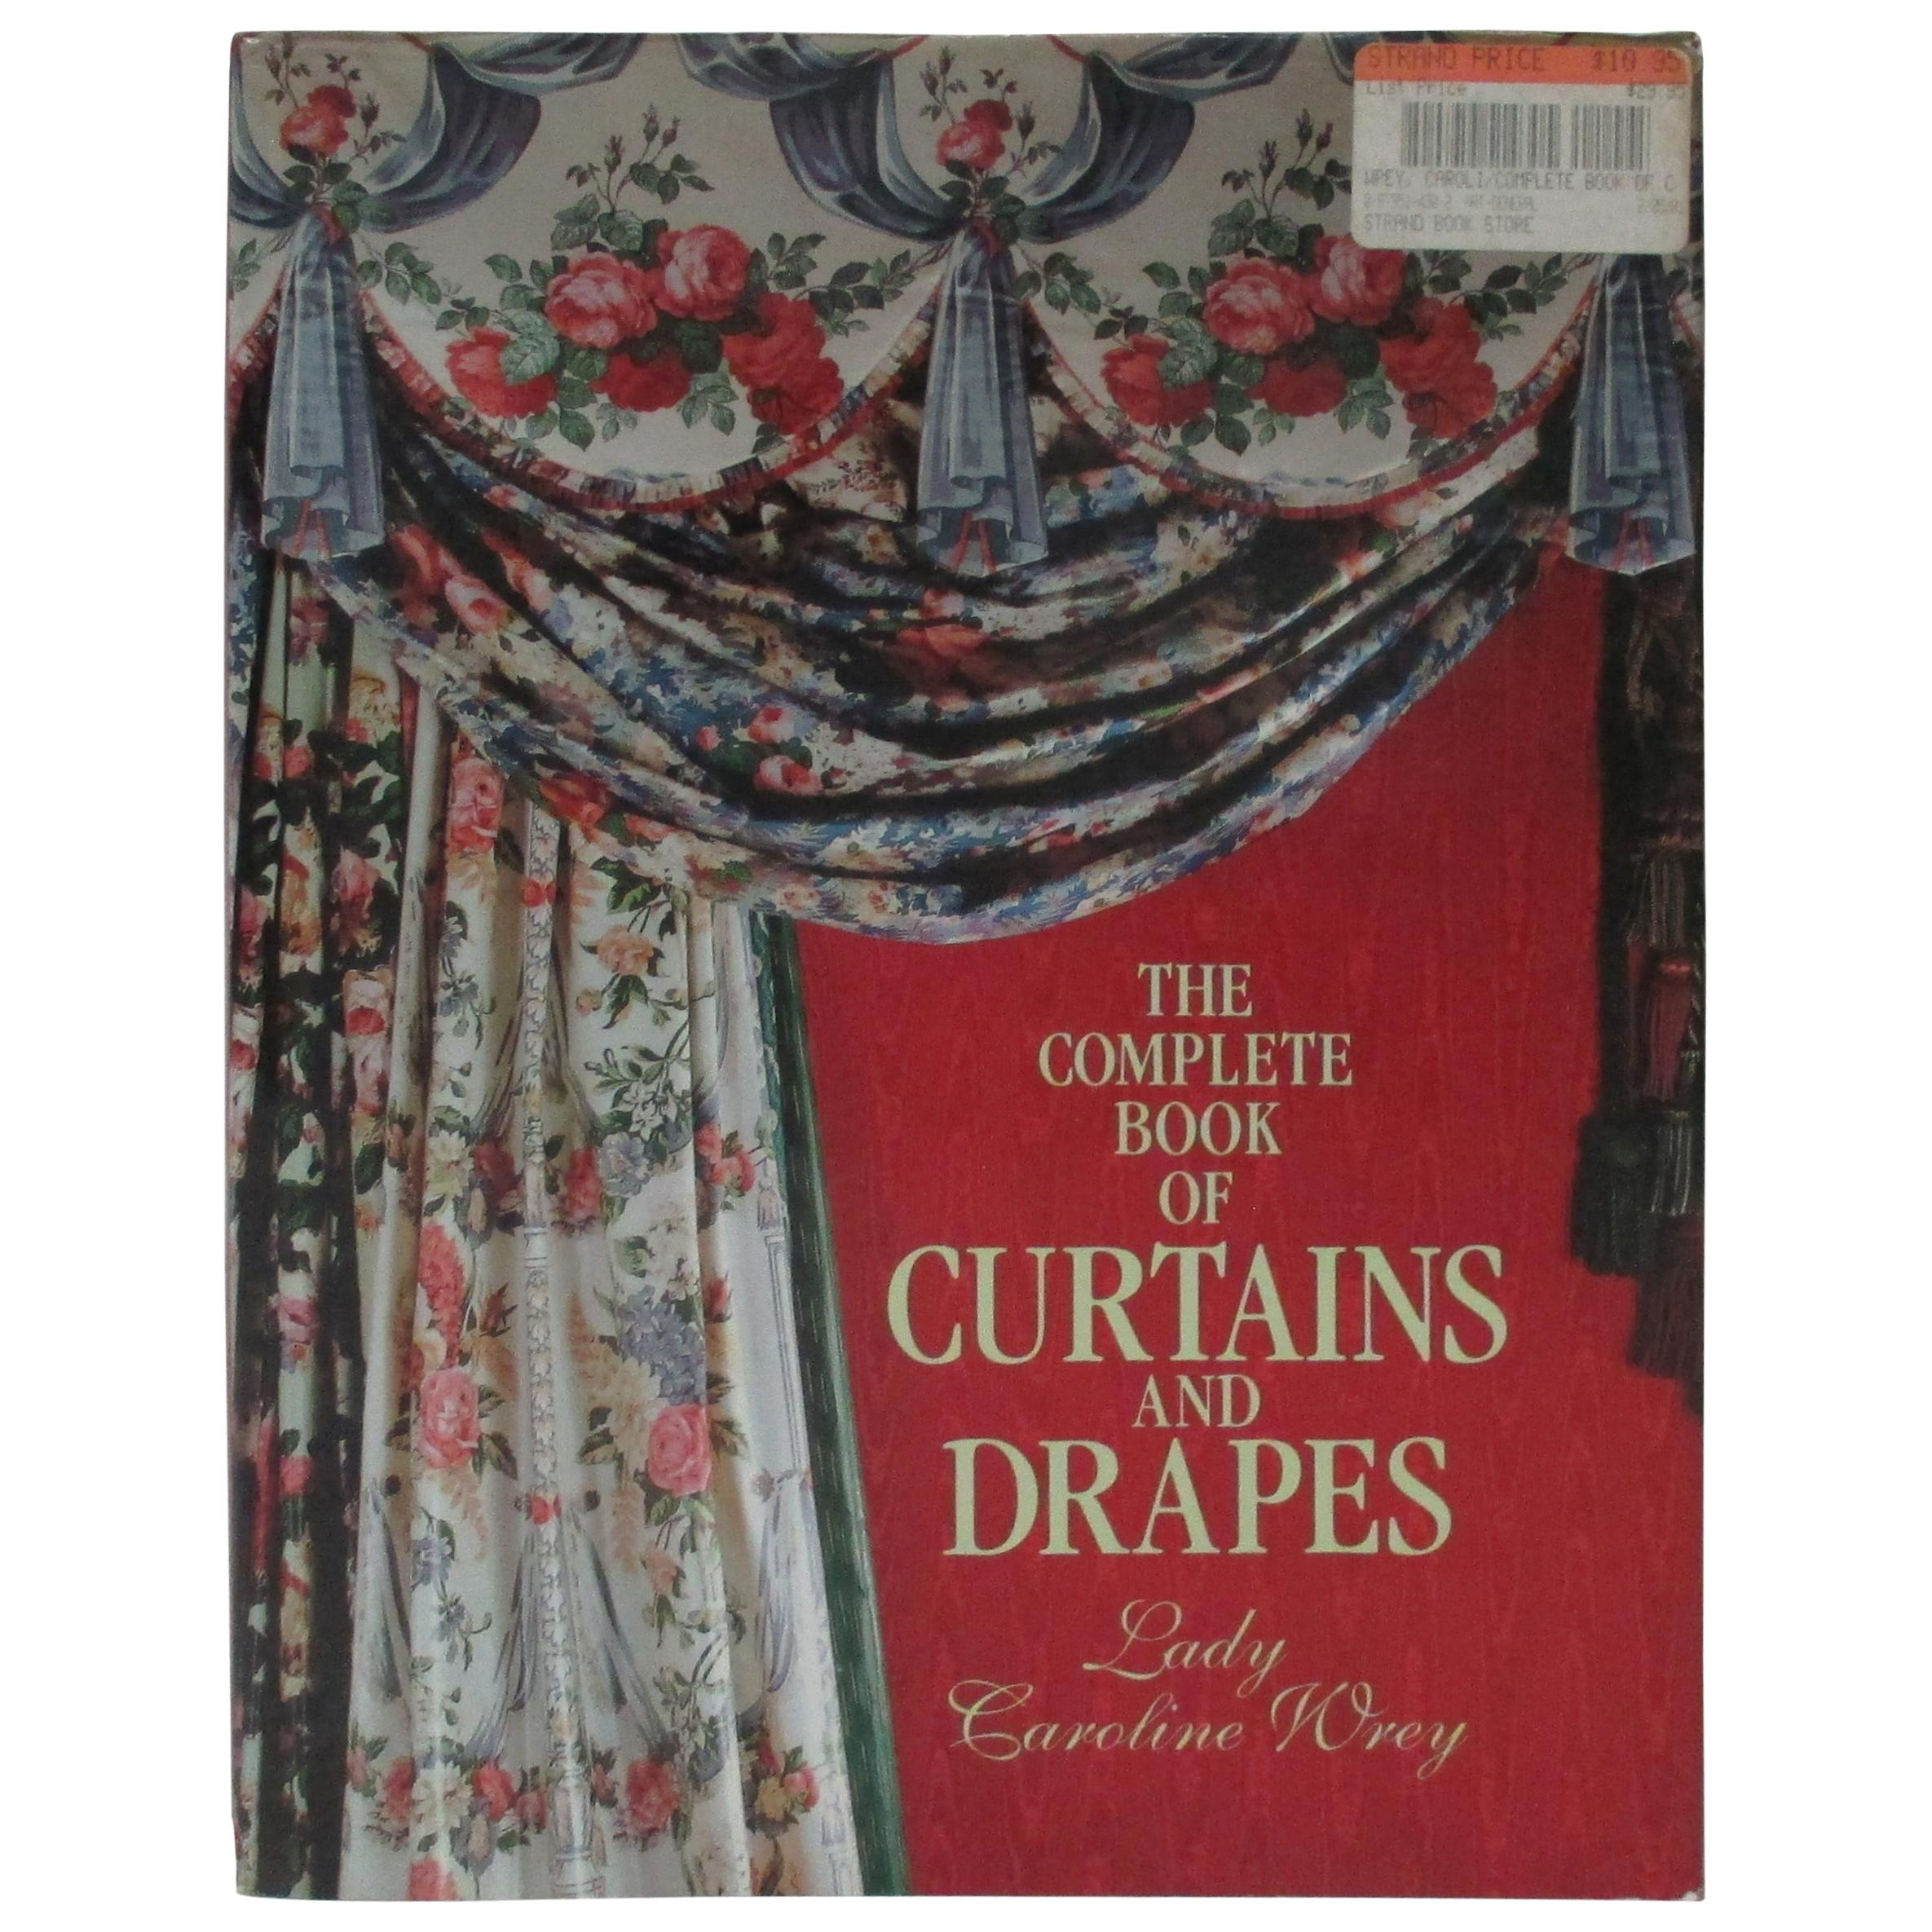 The Complete Book of Curtains and Drapes Hardcover